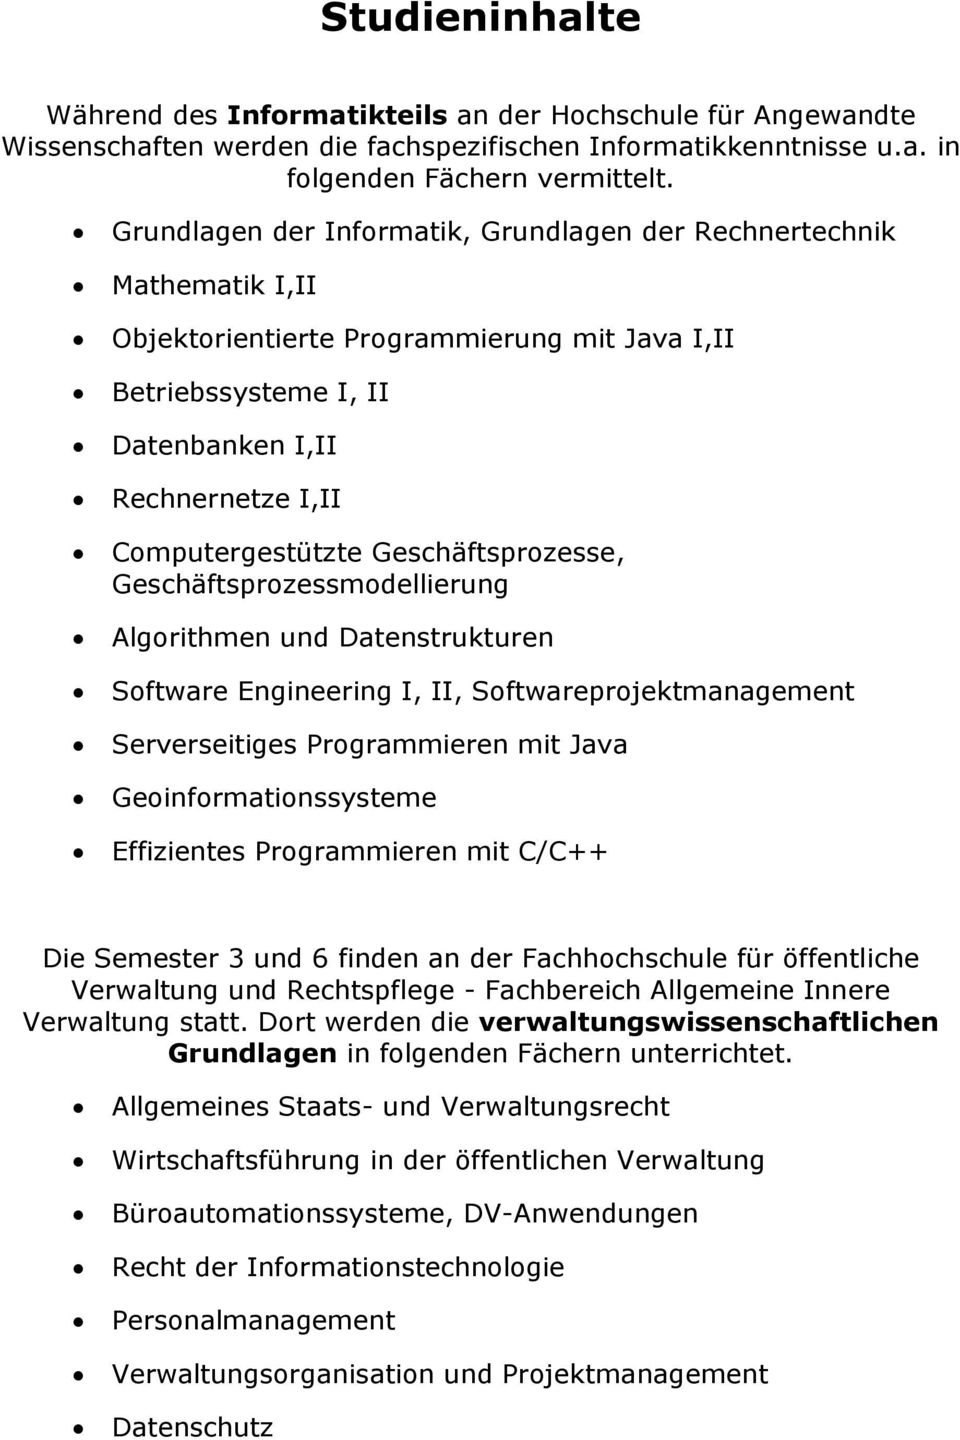 Geschäftsprozesse, Geschäftsprozessmodellierung Algorithmen und Datenstrukturen Software Engineering I, II, Softwareprojektmanagement Serverseitiges Programmieren mit Java Geoinformationssysteme